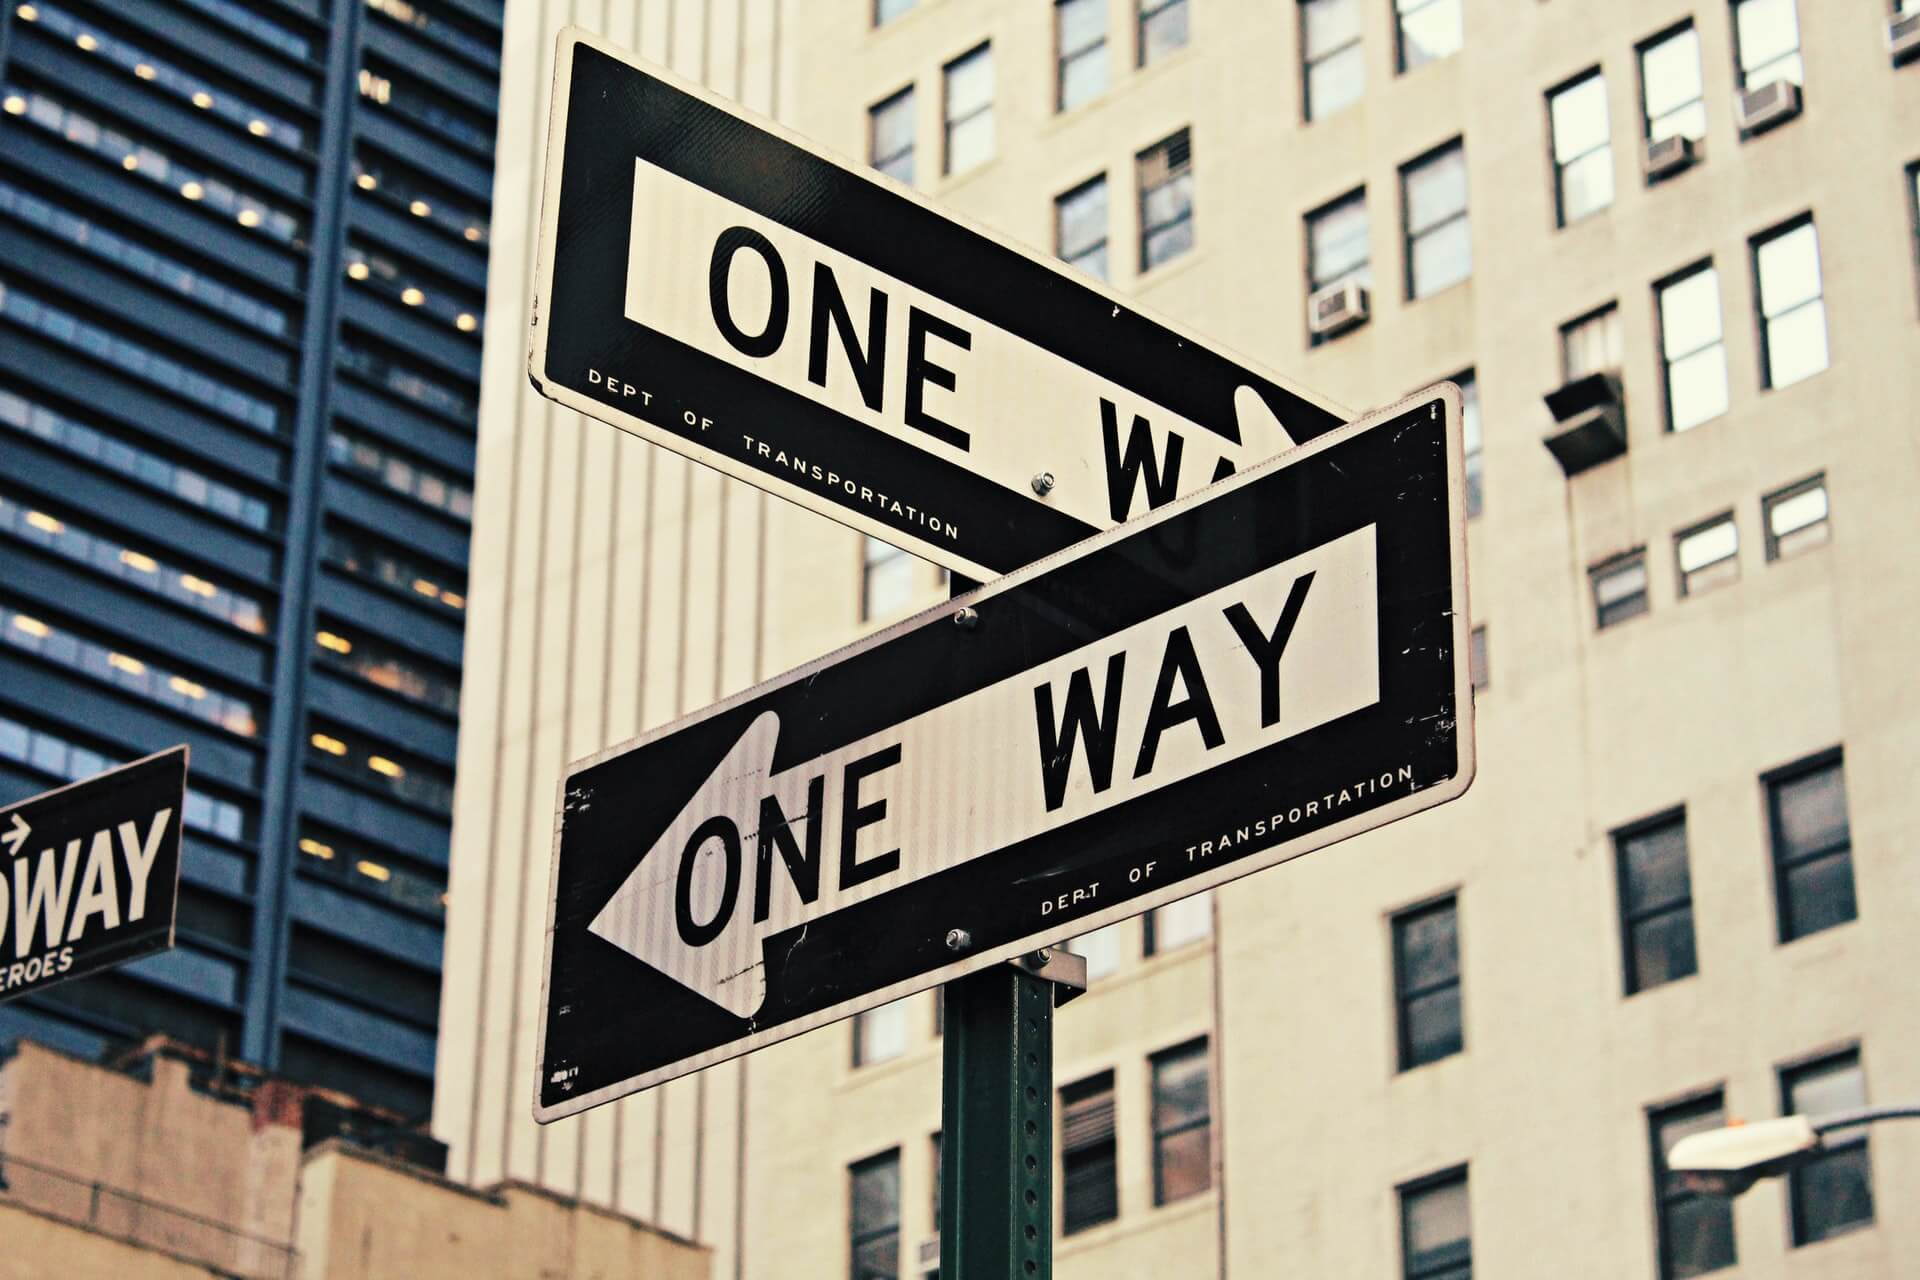 2 one way signs at a cross road